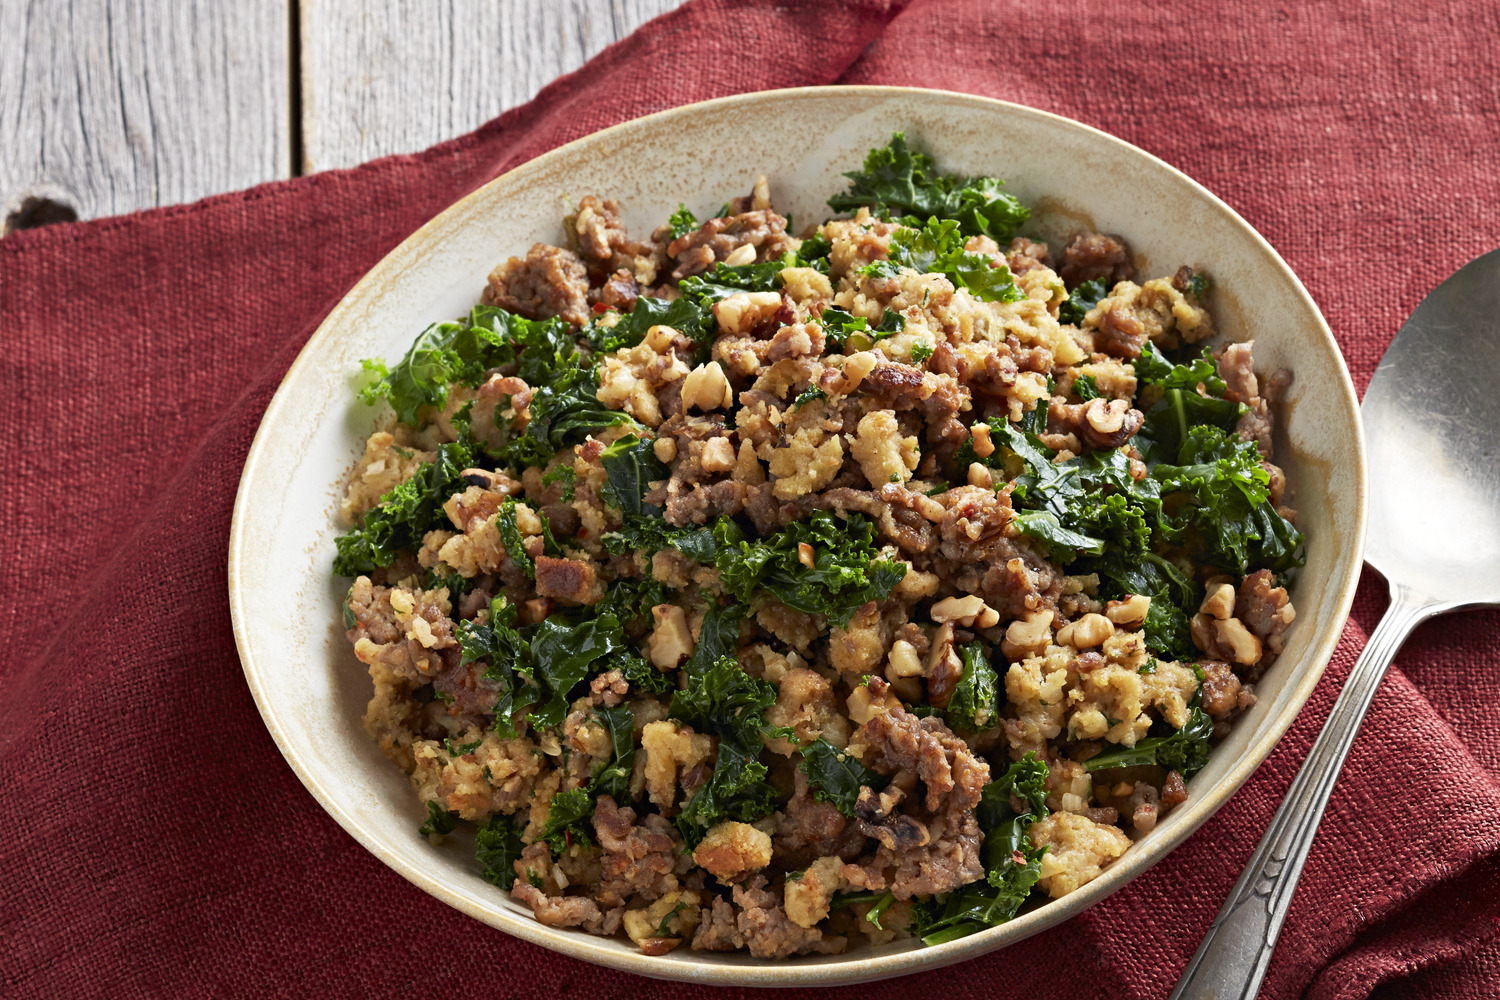 Italian Sausage and Kale Stuffing Image 1